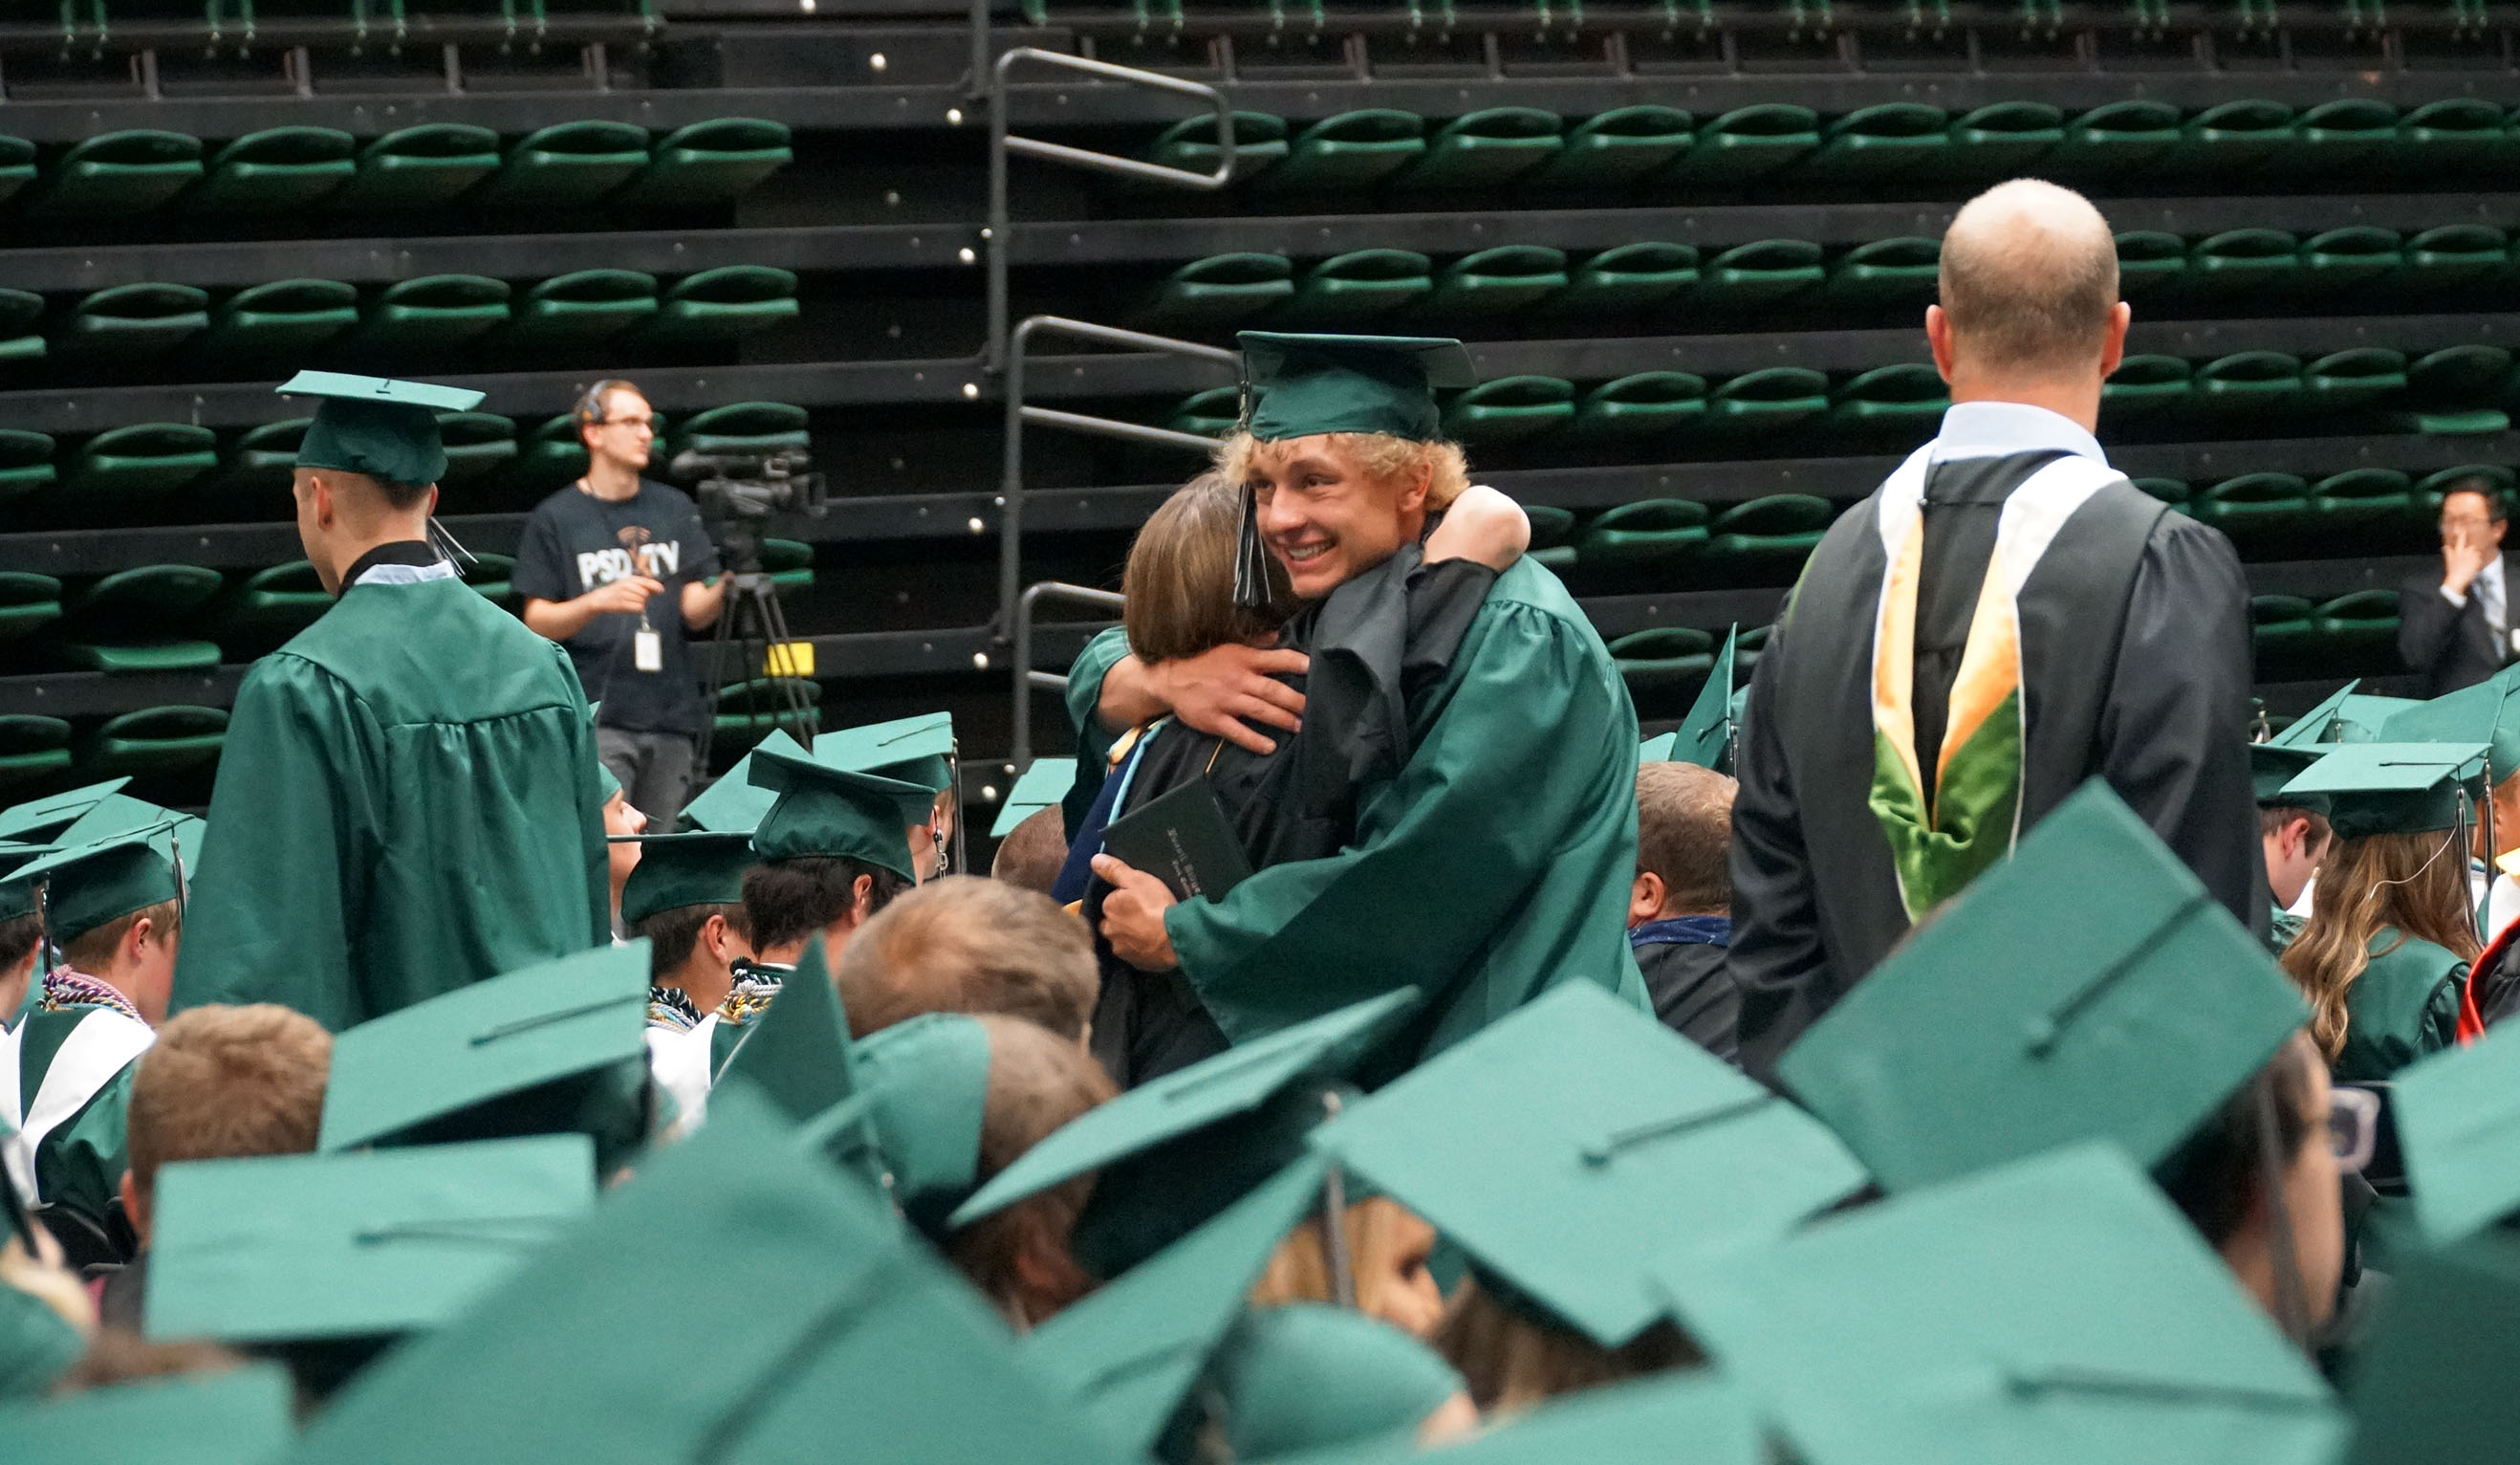 Two Fossil Ridge grads hug in a sea of graduates.